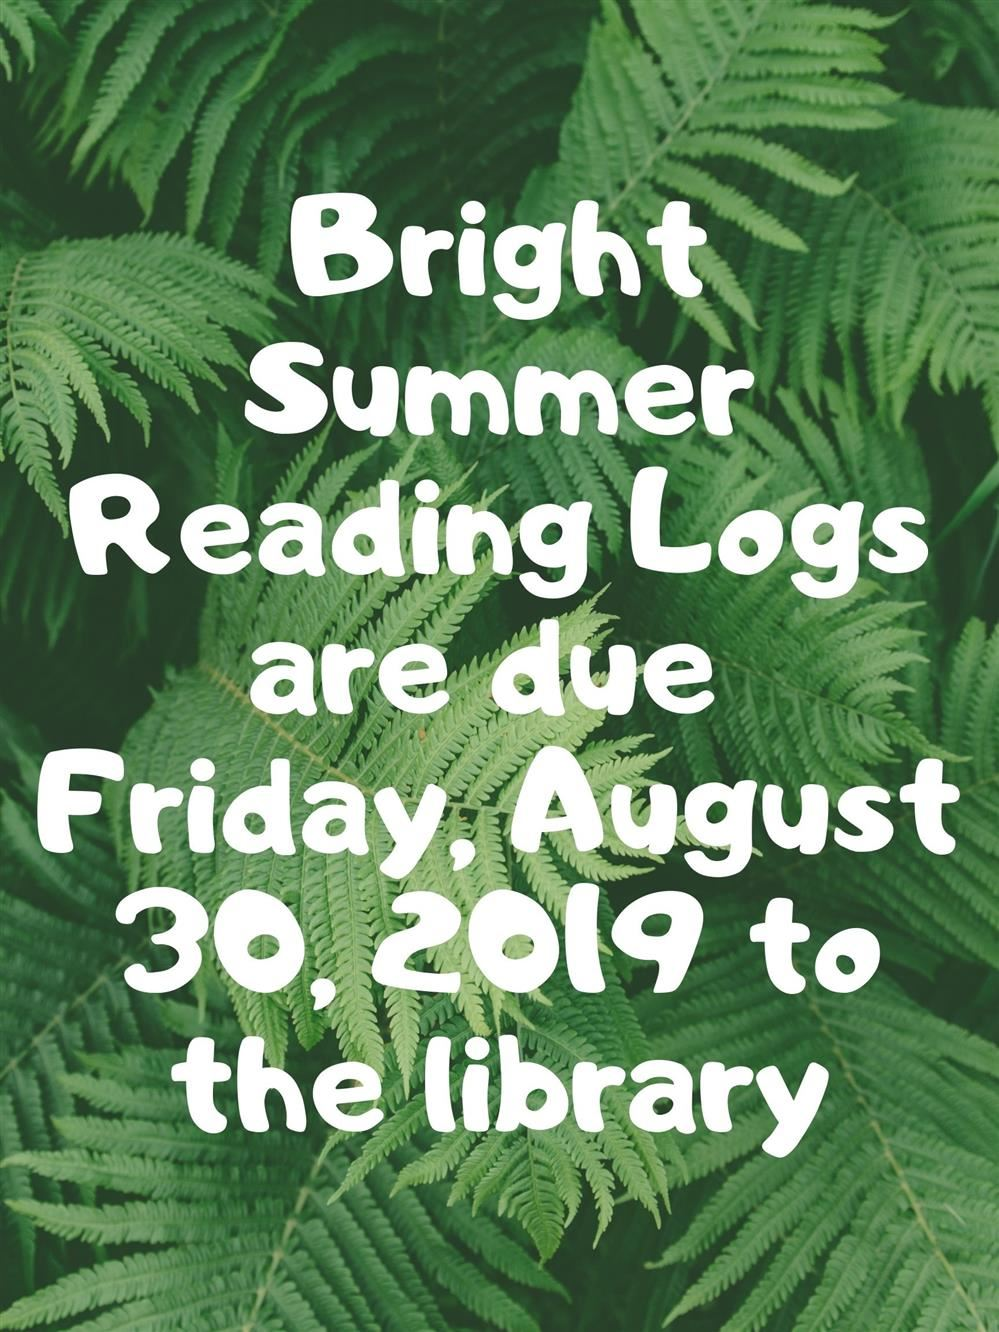 Student Reading logs are Due Friday, August 30, 2019